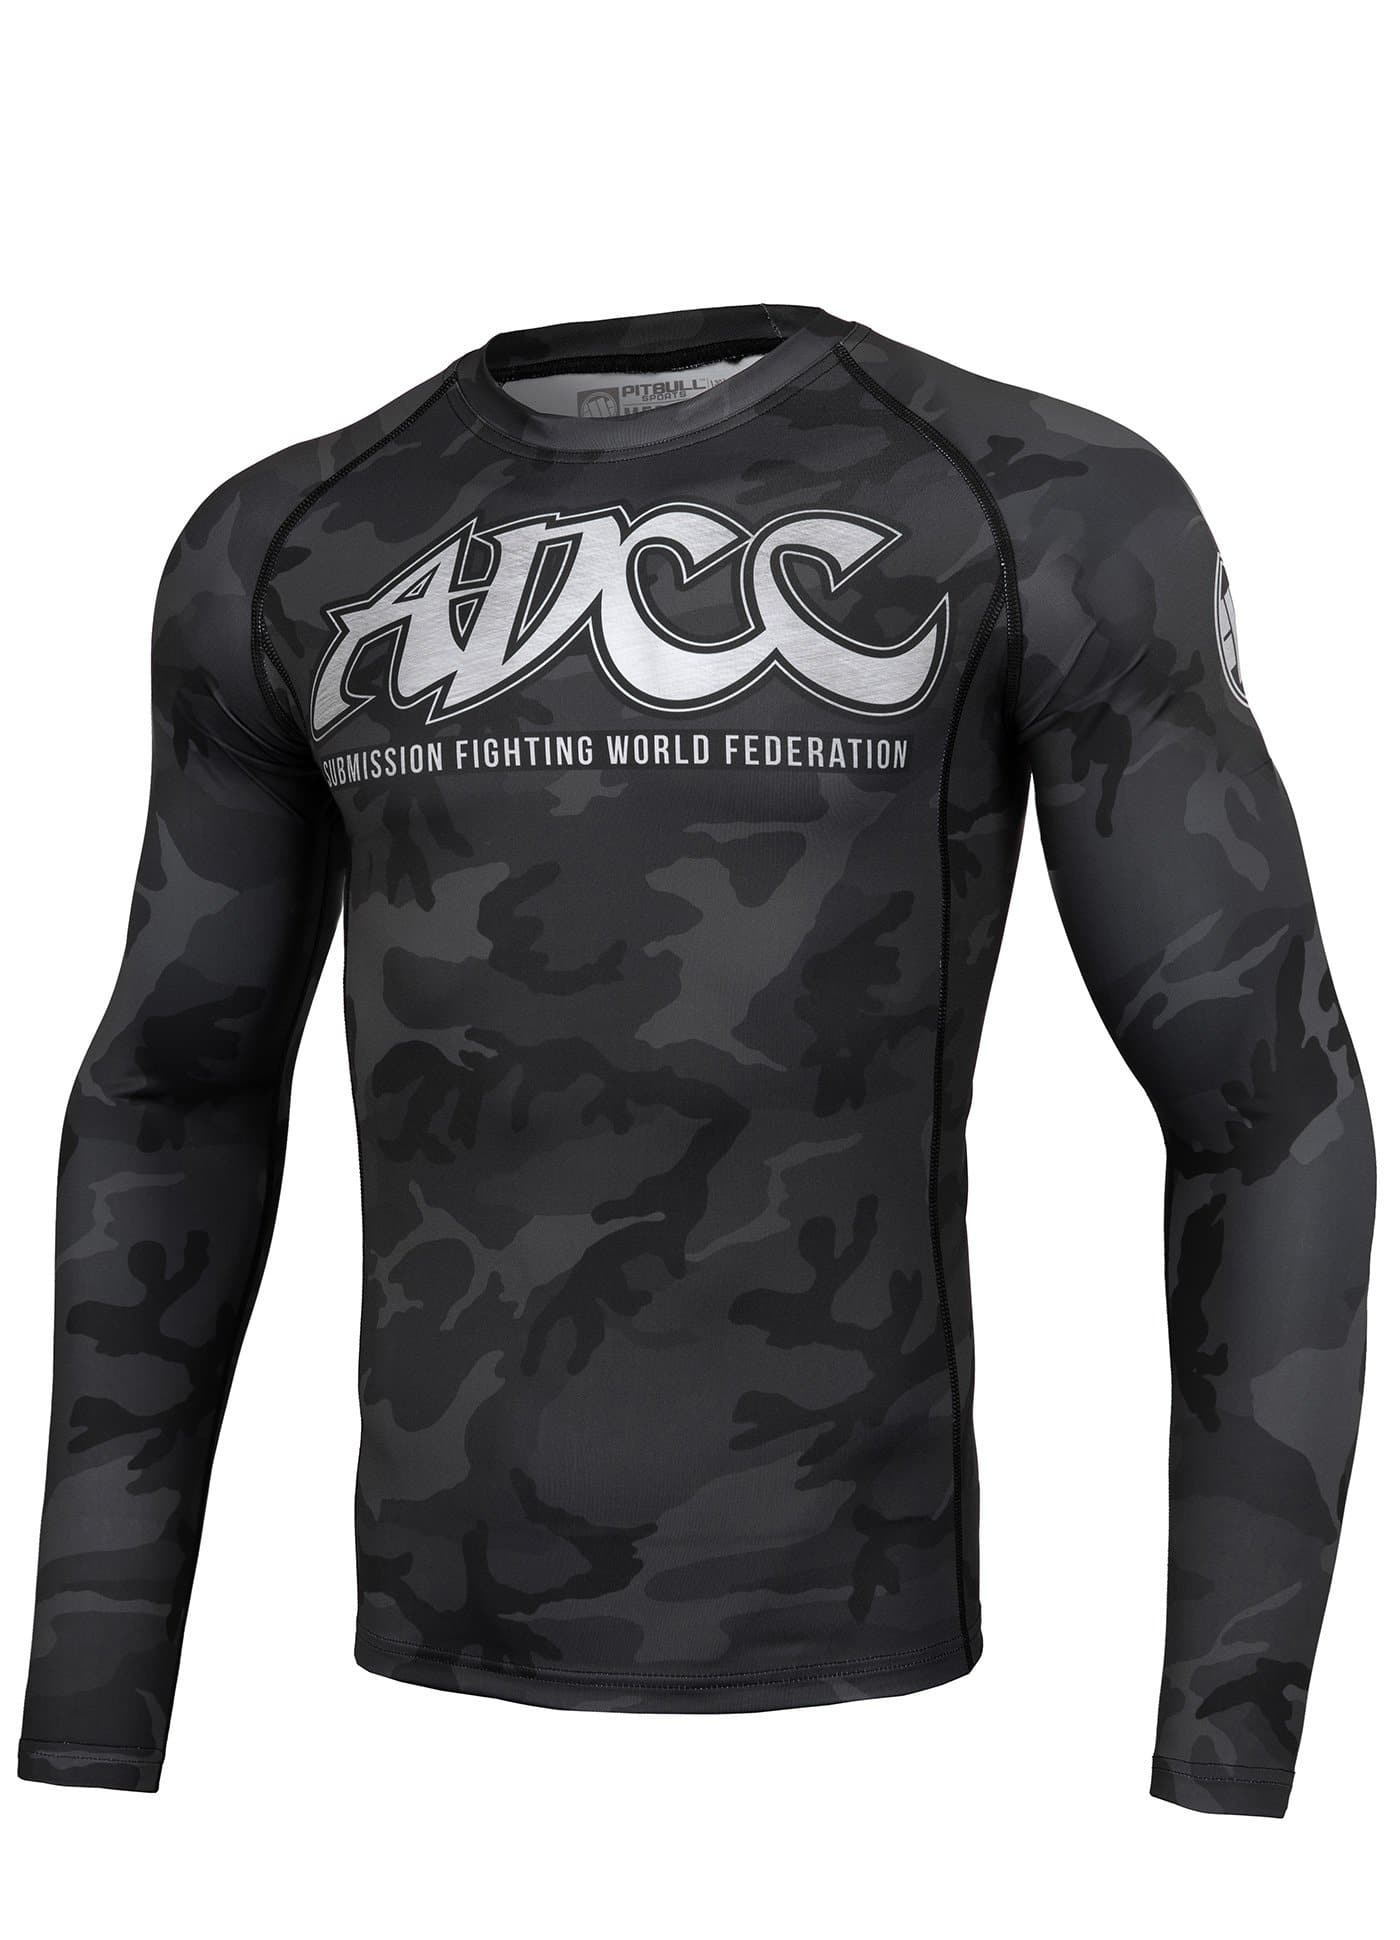 ADCC ALL BLACK Long Sleeve Rashguard